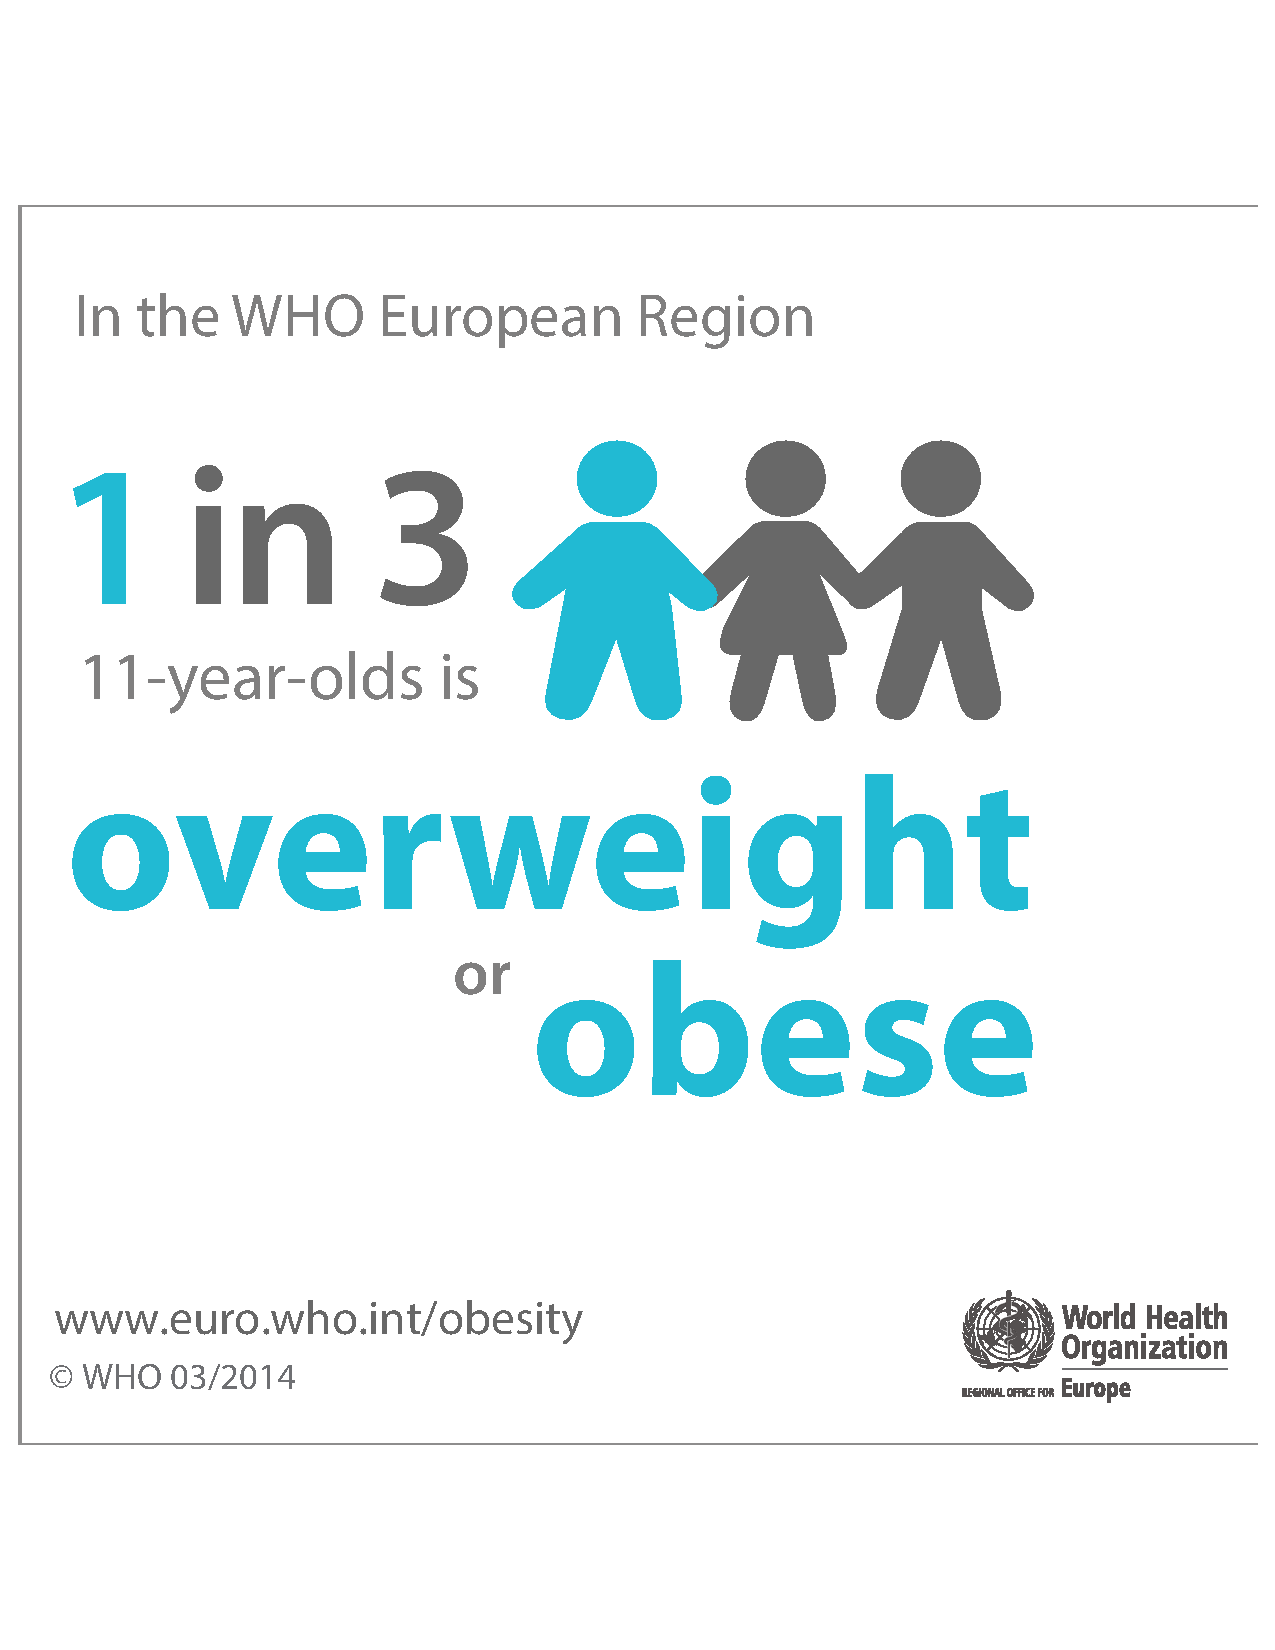 1 in 3 11-year-olds is overweight or obese